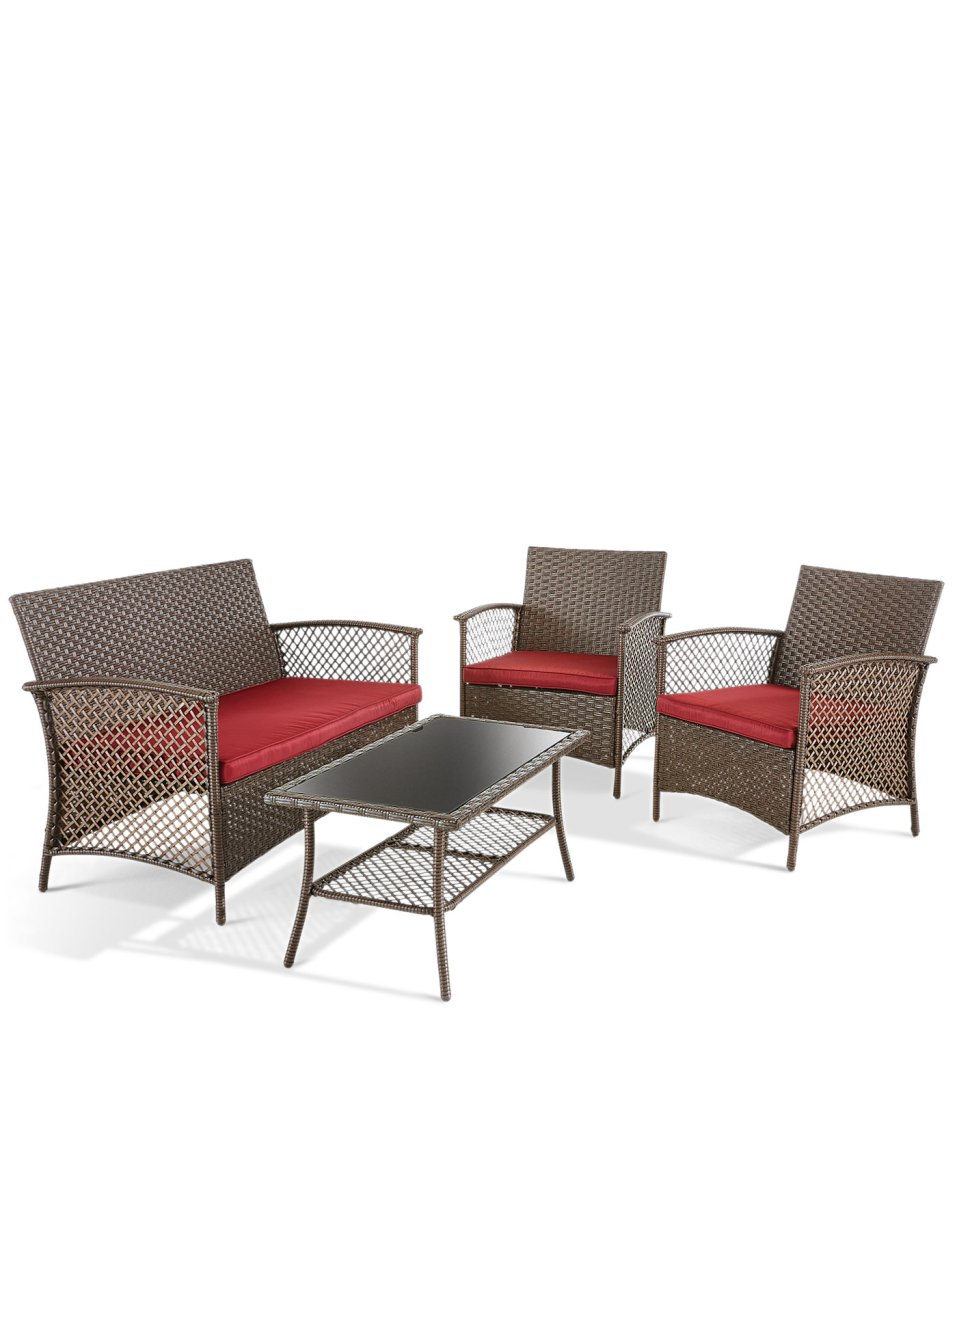 Mobili lounge arona st 7 pezzi marrone bpc living for Acquista mobili online